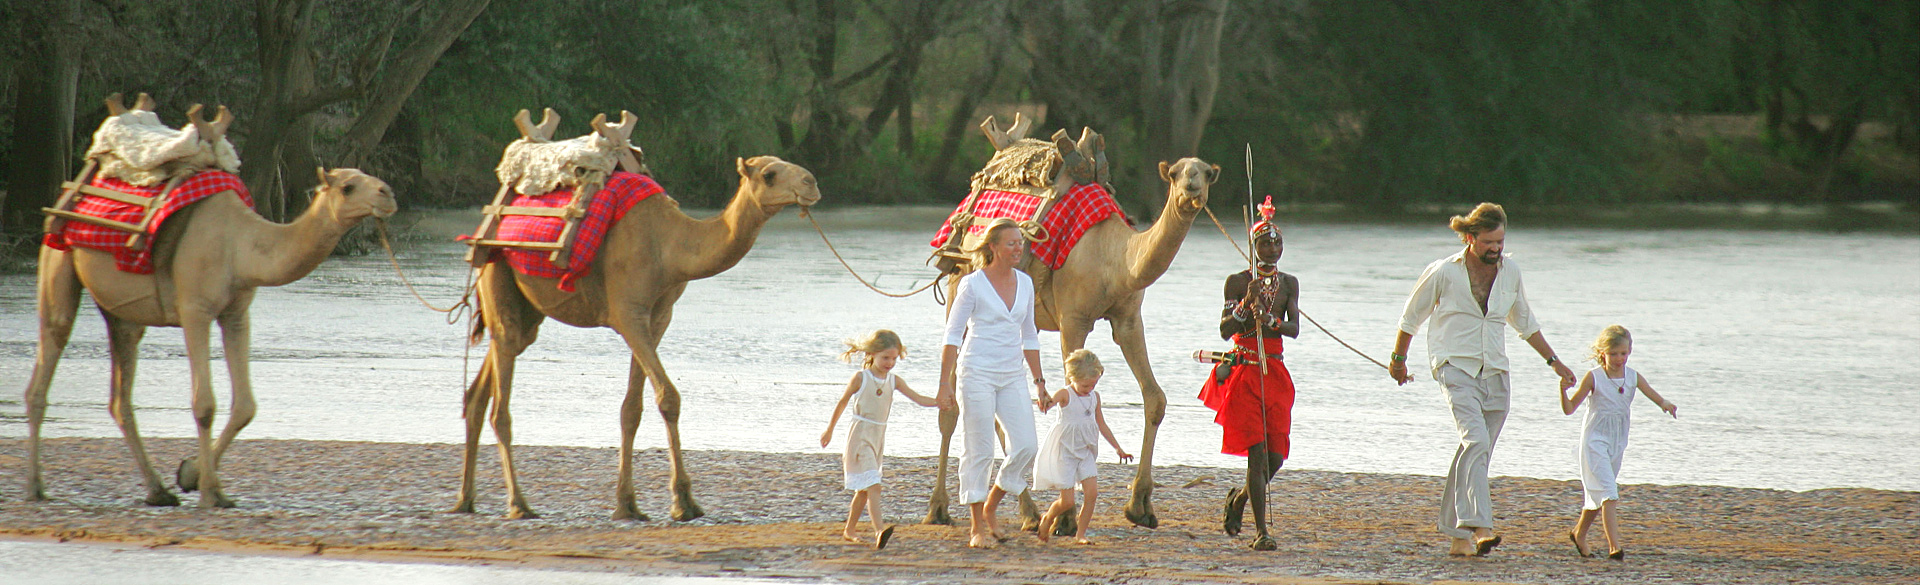 Walking with camels courtesy Sasaab